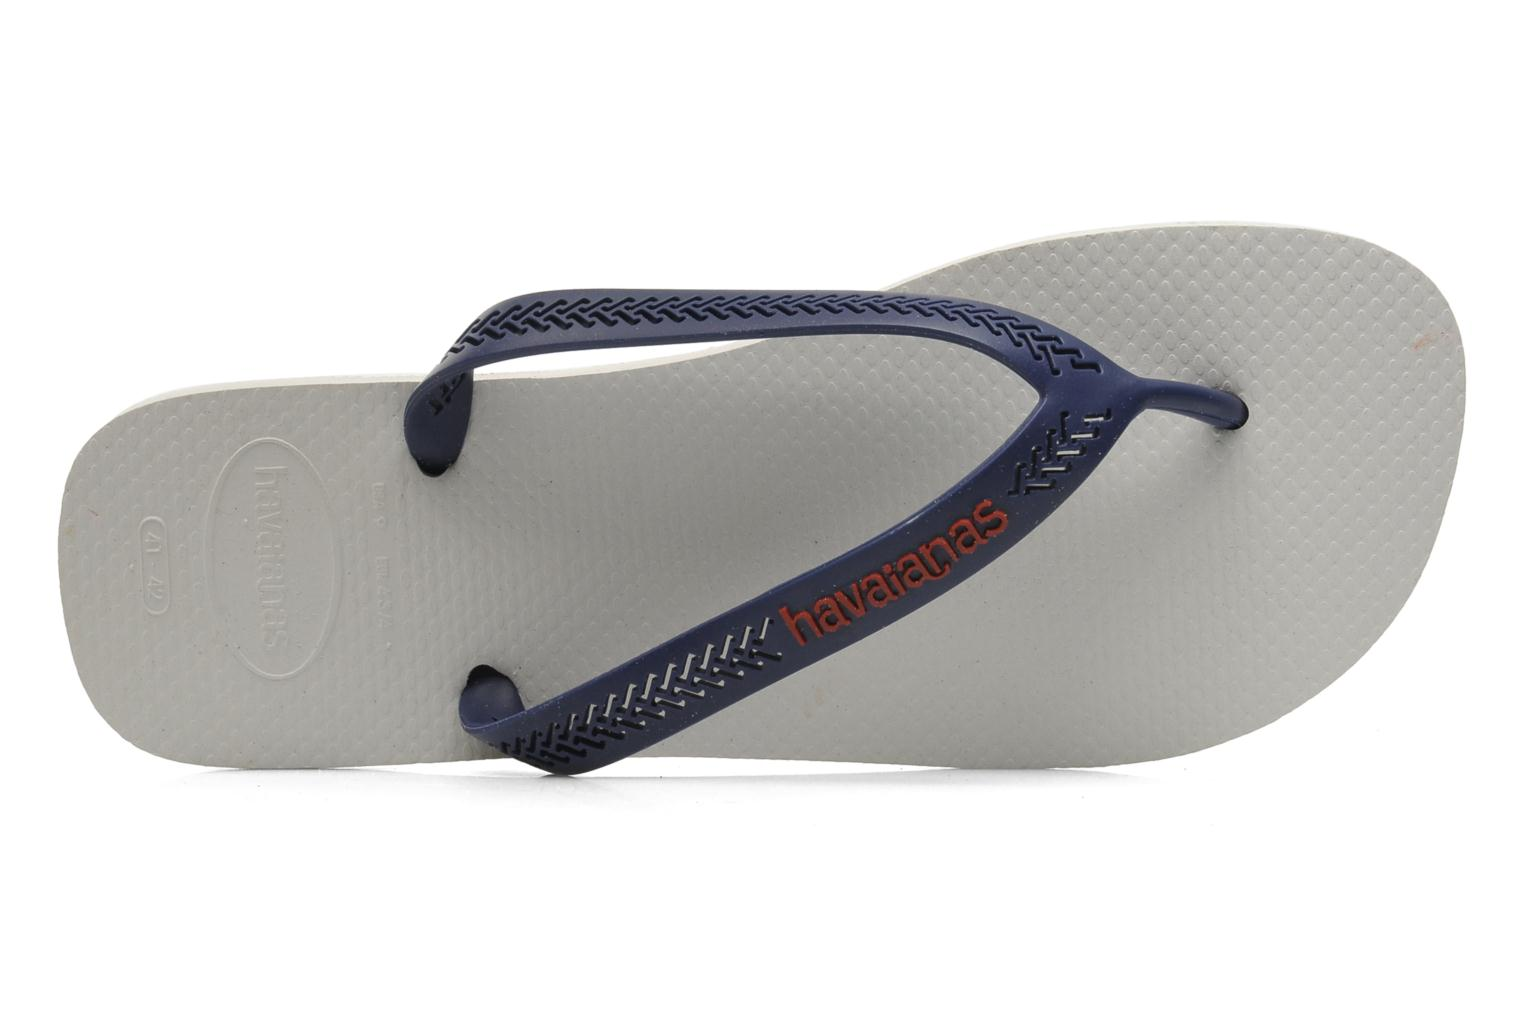 Aero White/Navy blue